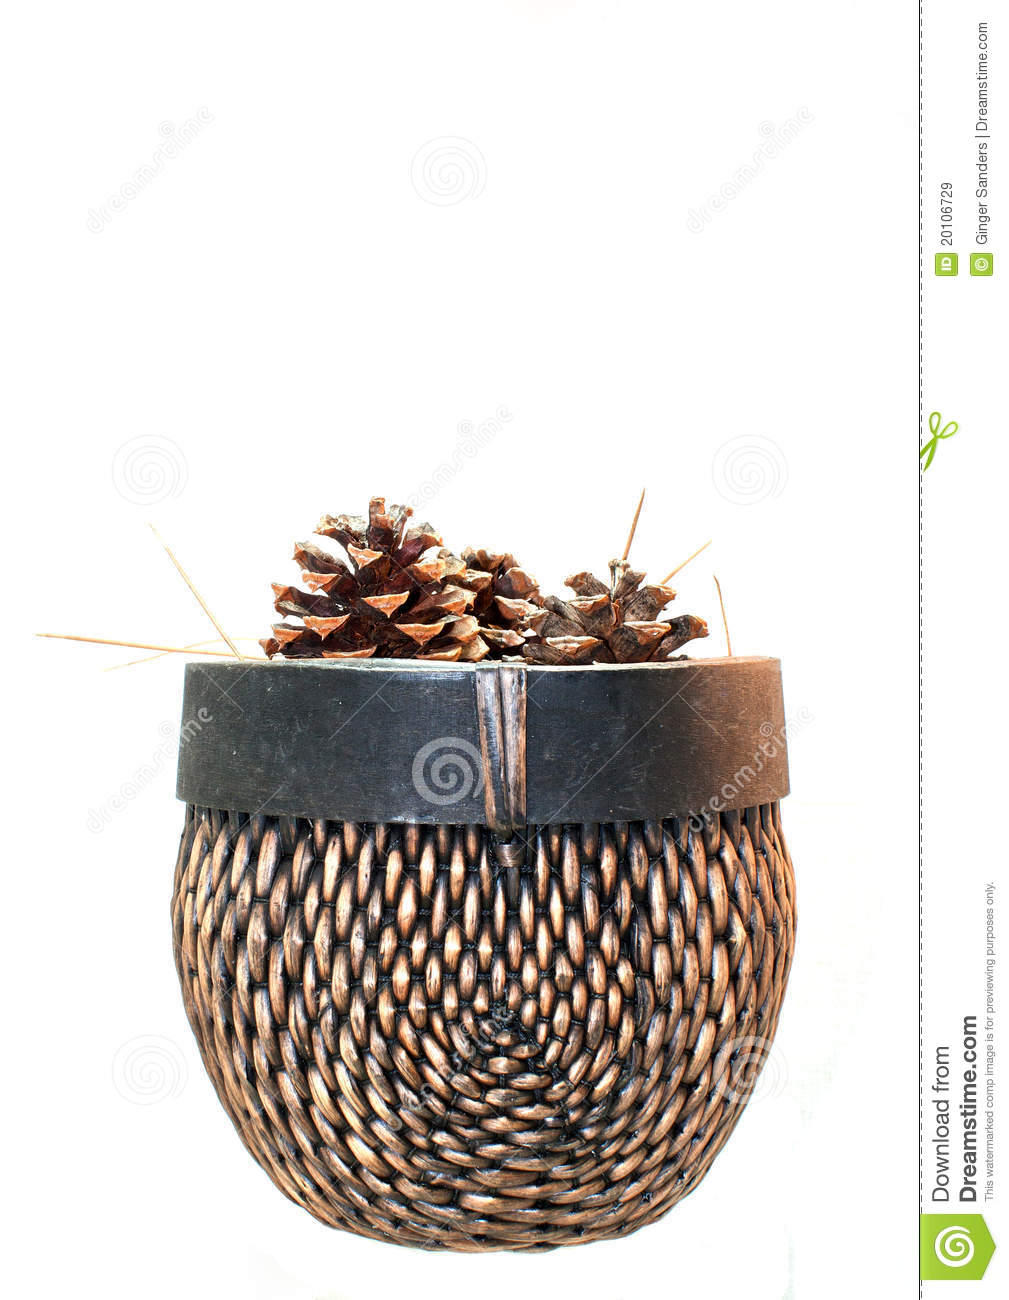 Pinecones in A Geweven Mand